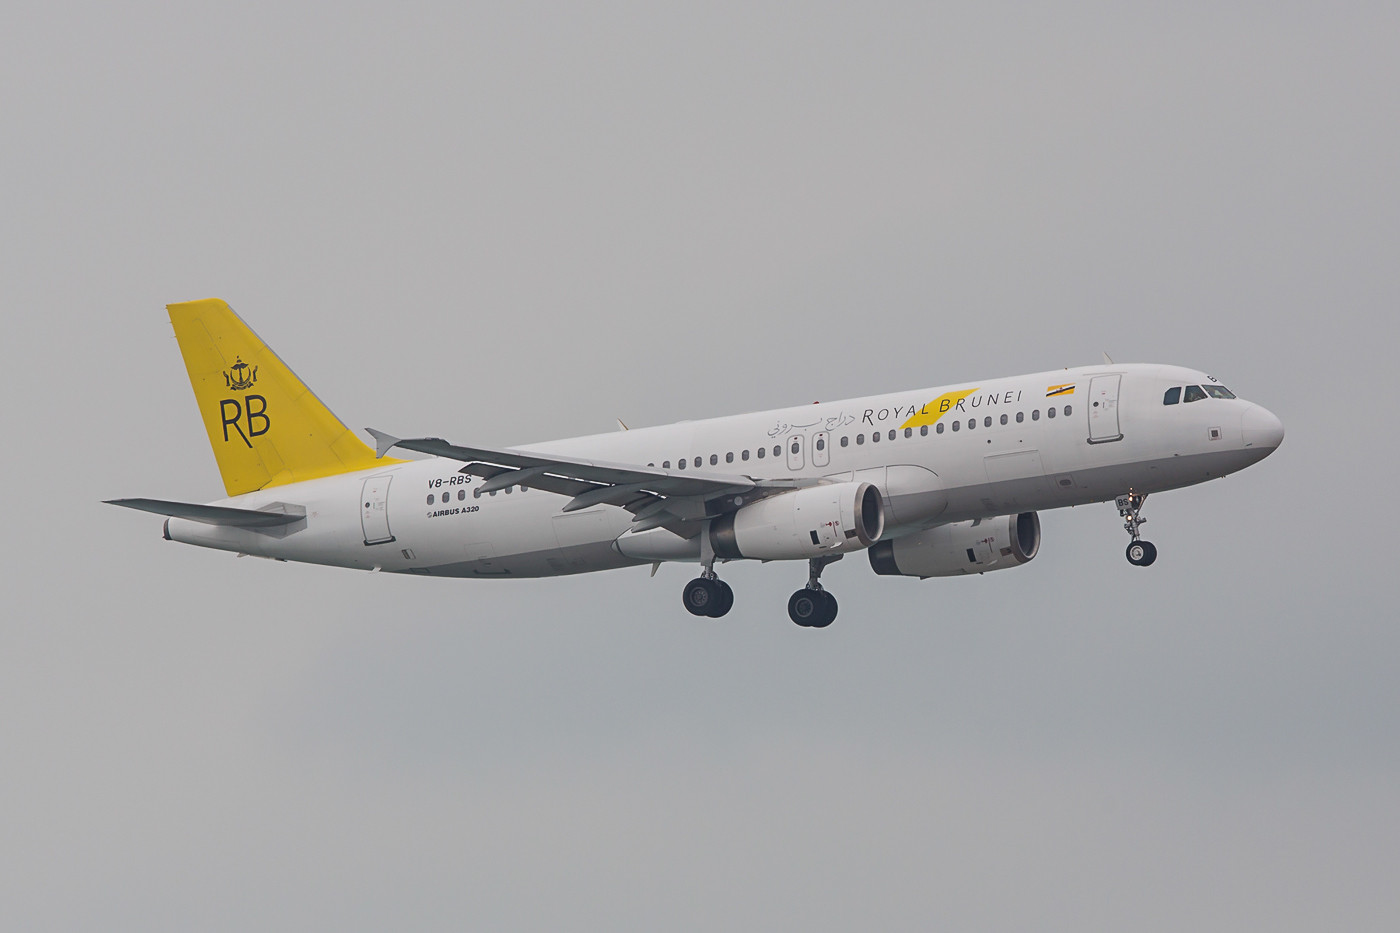 A 320 der Royal Brunei